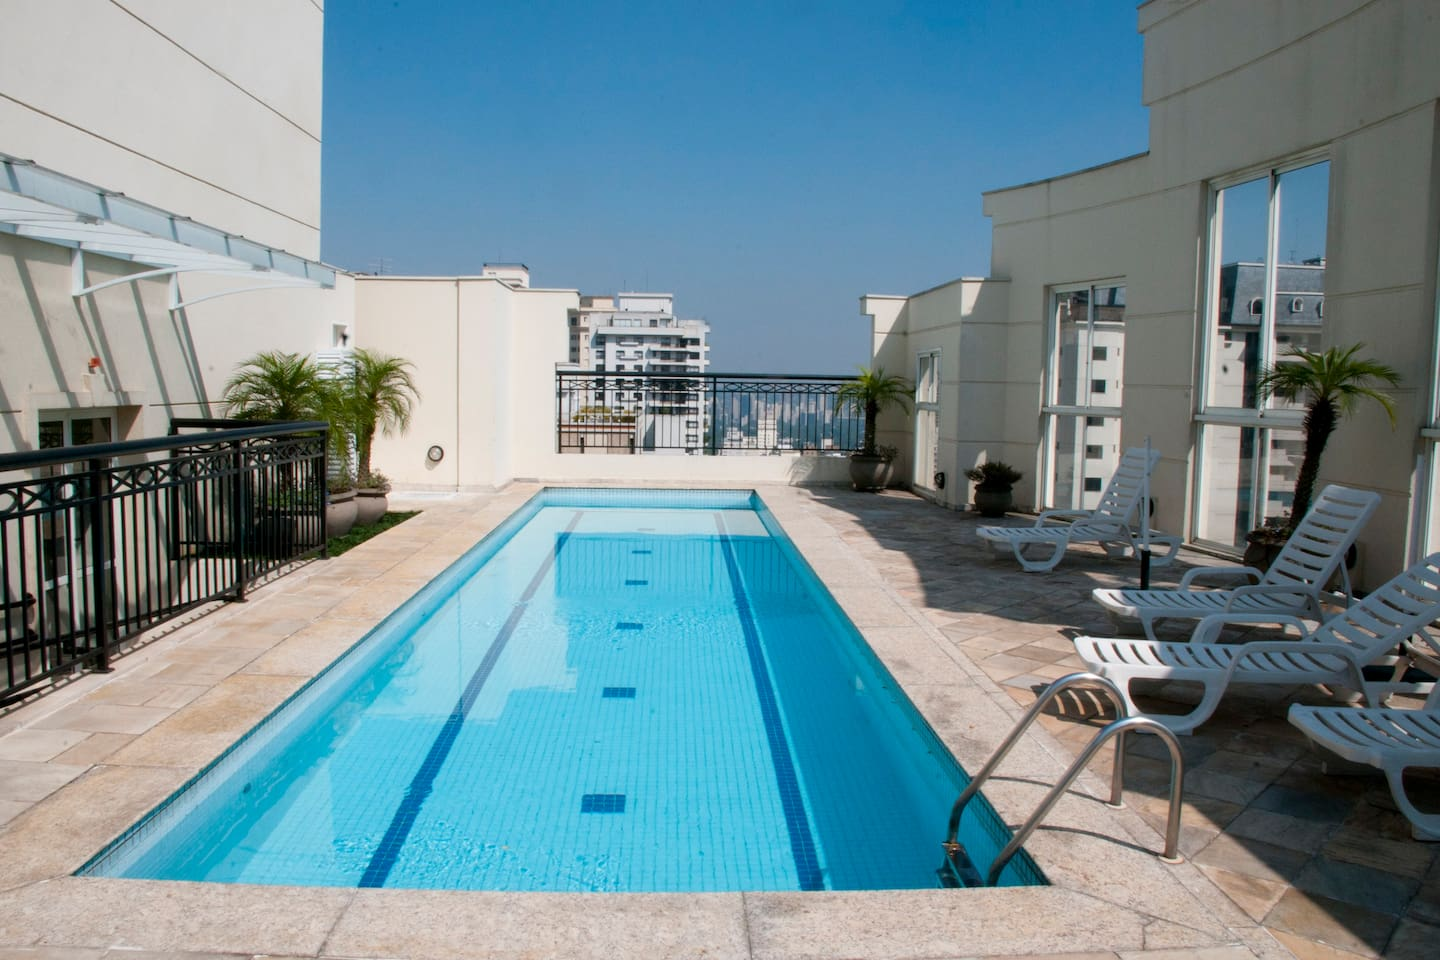 LUXURY APT BY PAULISTA AV. + JARDINS- Next to Paulista Ave on Jardins (Manhattan/ Soho) side.  Rooftop pool with breathtaking views.  Lightening ultra speedy 200 Mbps fiber optic internet wi-fi connection for business or personal use.